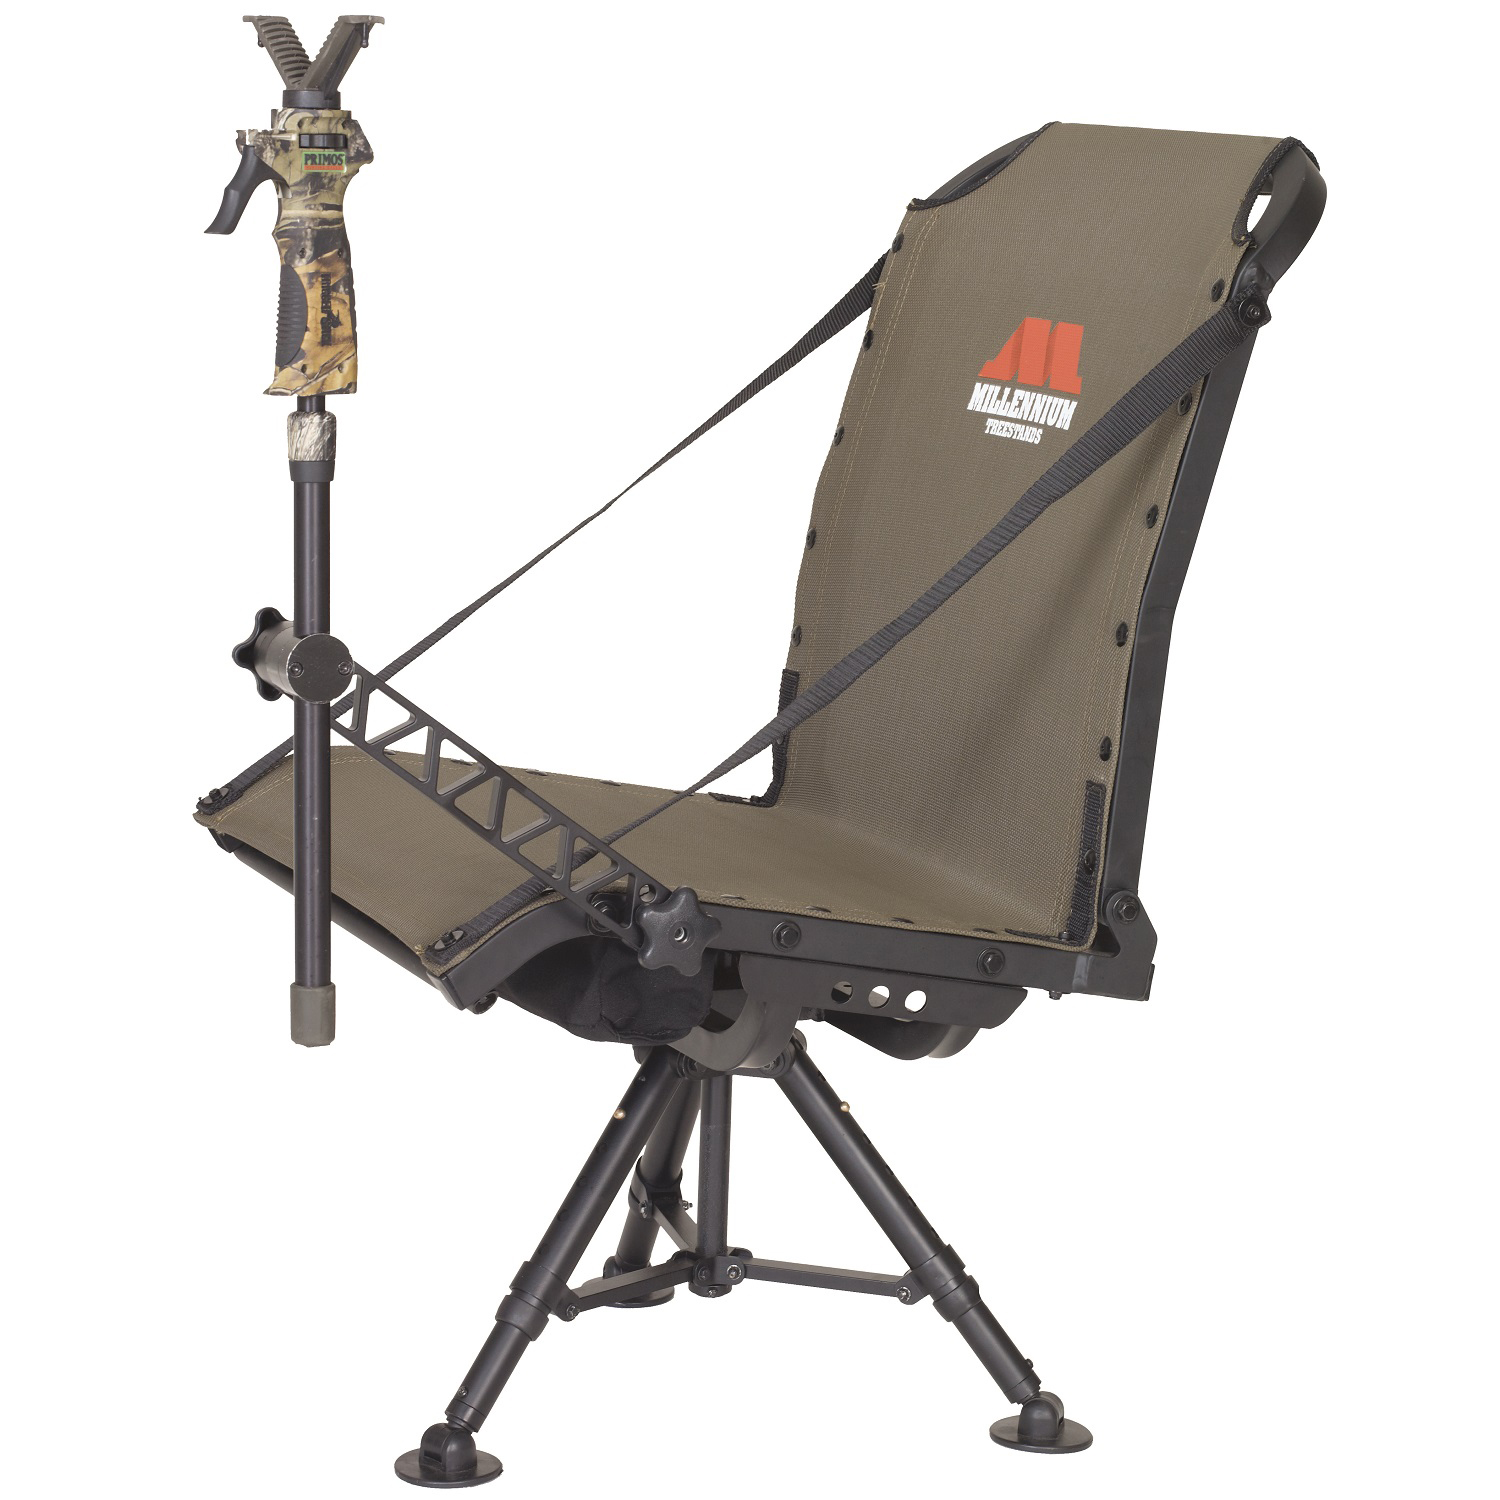 chair stand hsn code bean bag chairs for boys millennium treestands blind shooting mount